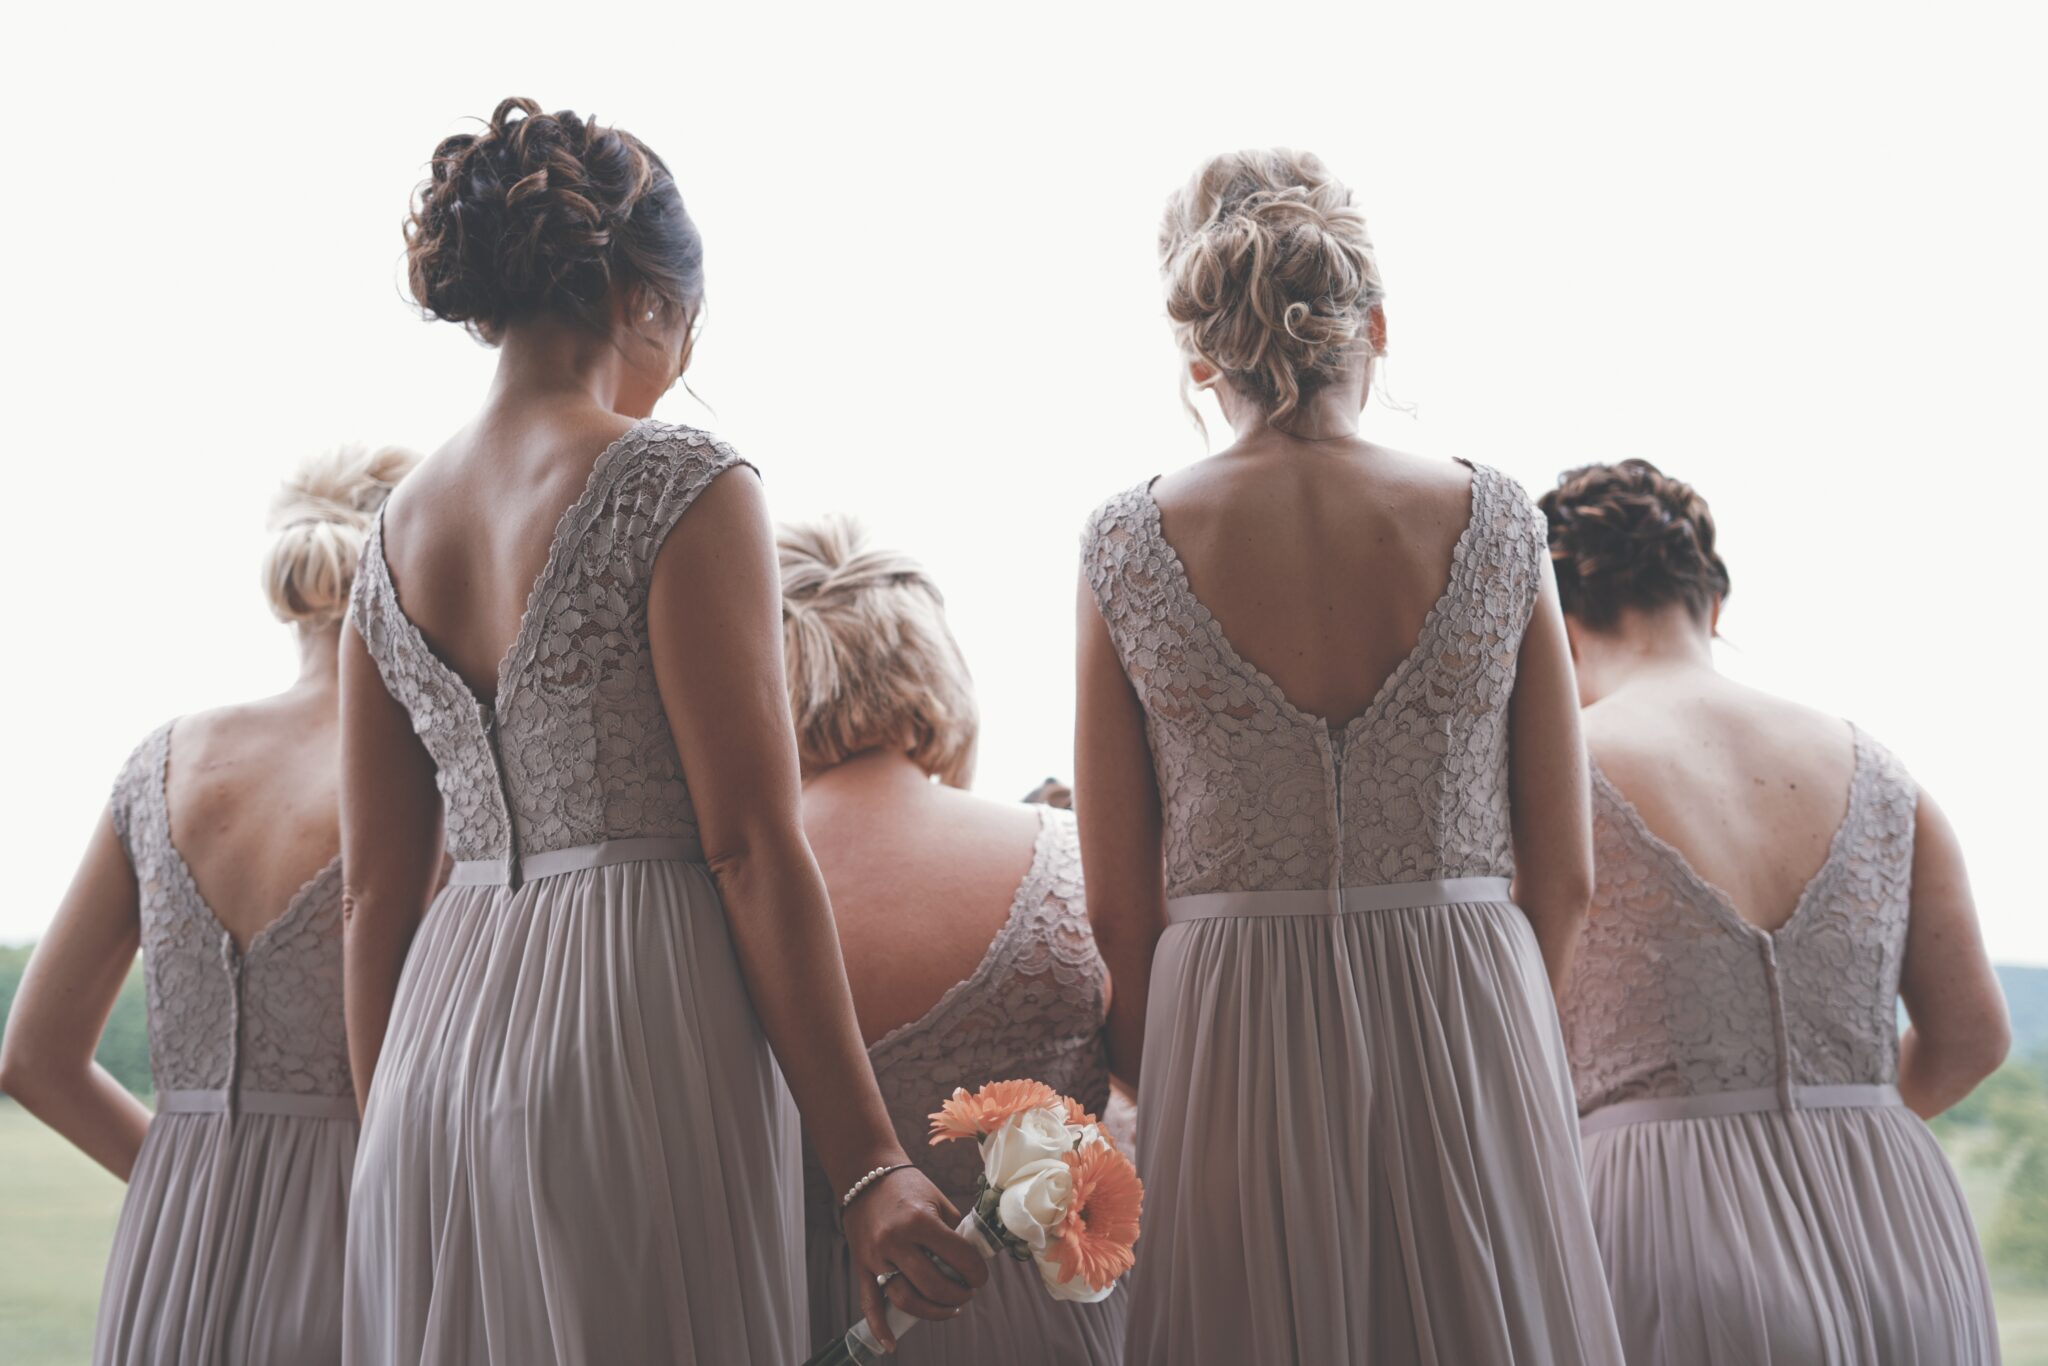 Want to Give Your Bridesmaids the best gift? Check out our list!